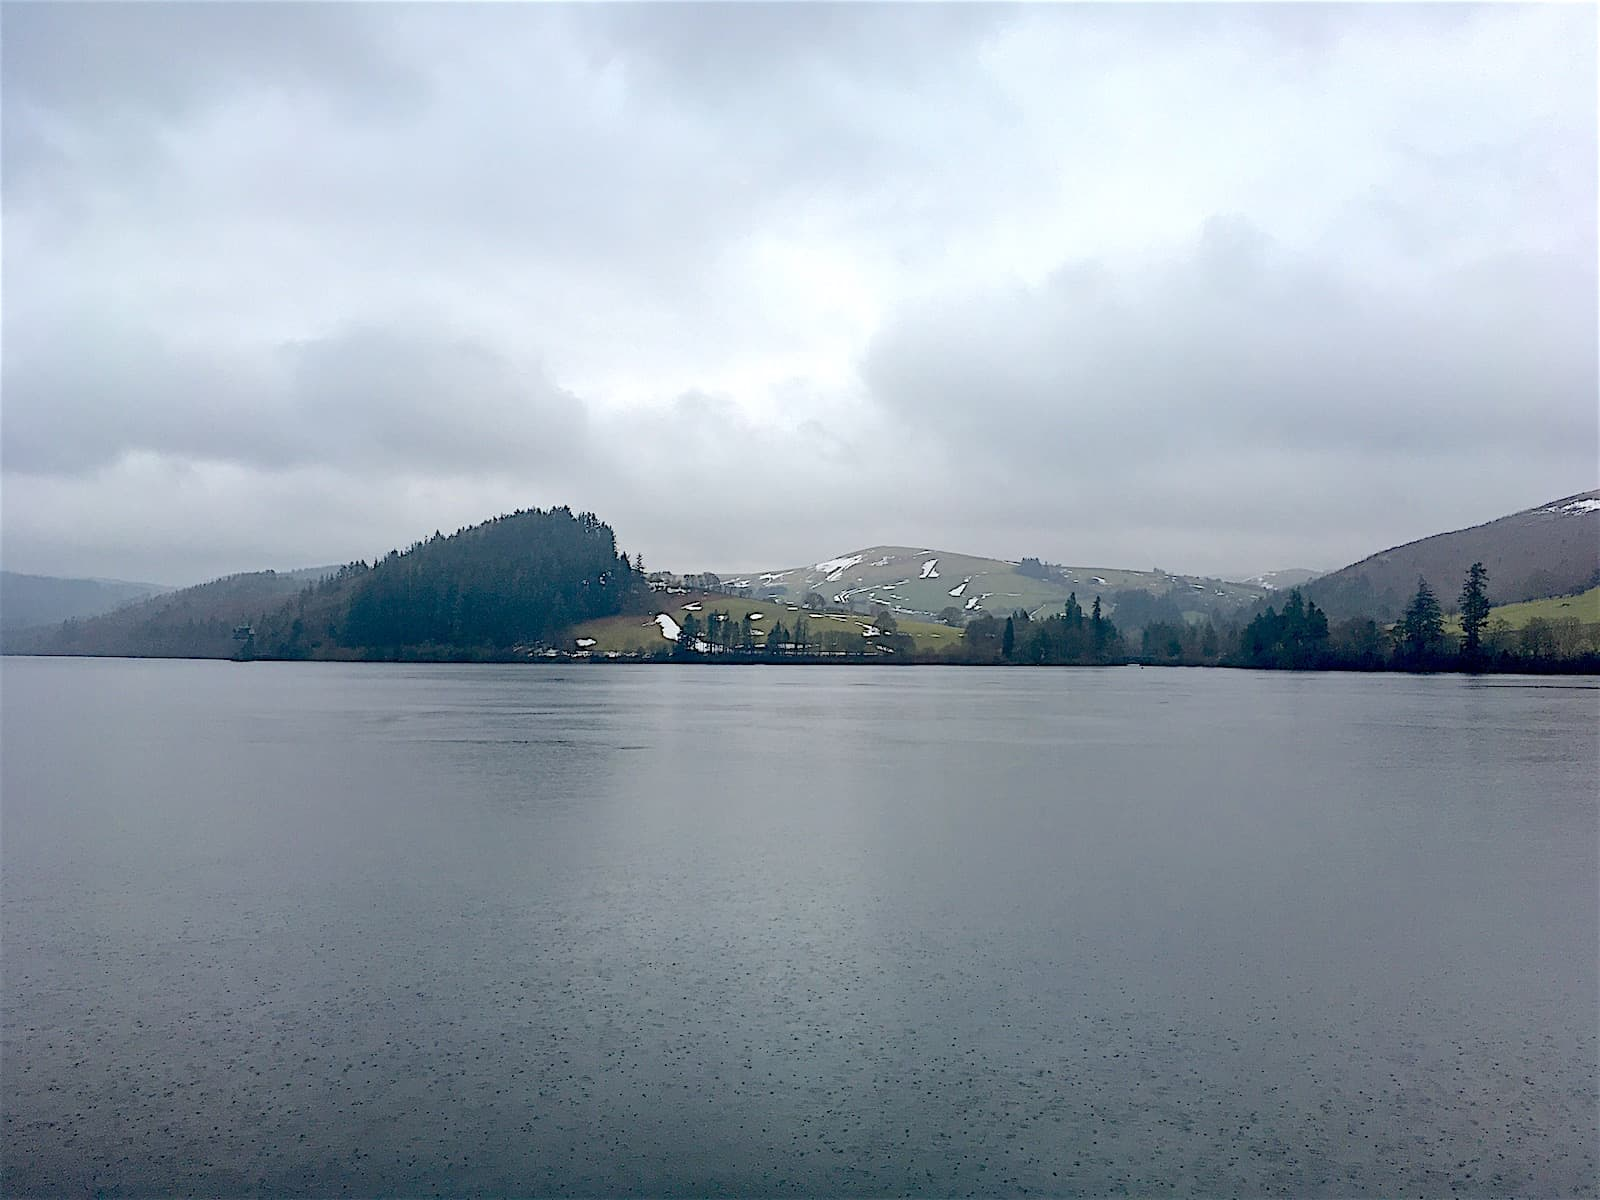 Lake Vyrnwy | March 2018 | Featured Image | thefrozendivide